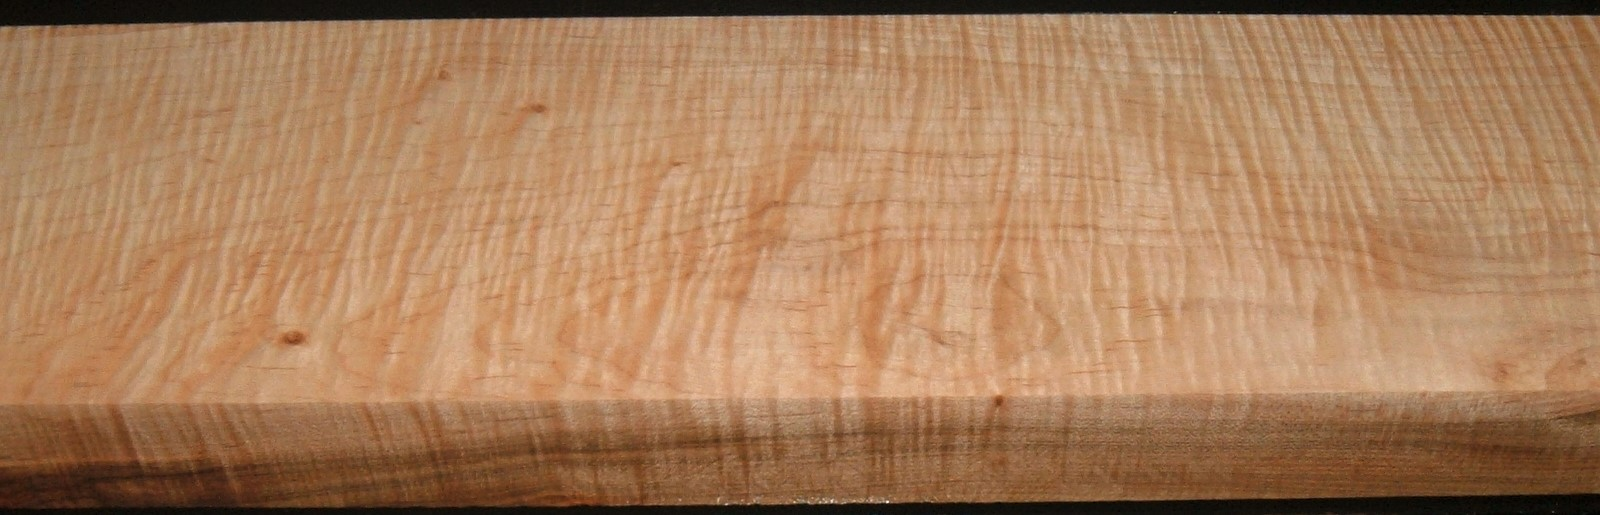 M2004-383JJ, 1-13/16x6-3/8x49, Curly Tiger Maple